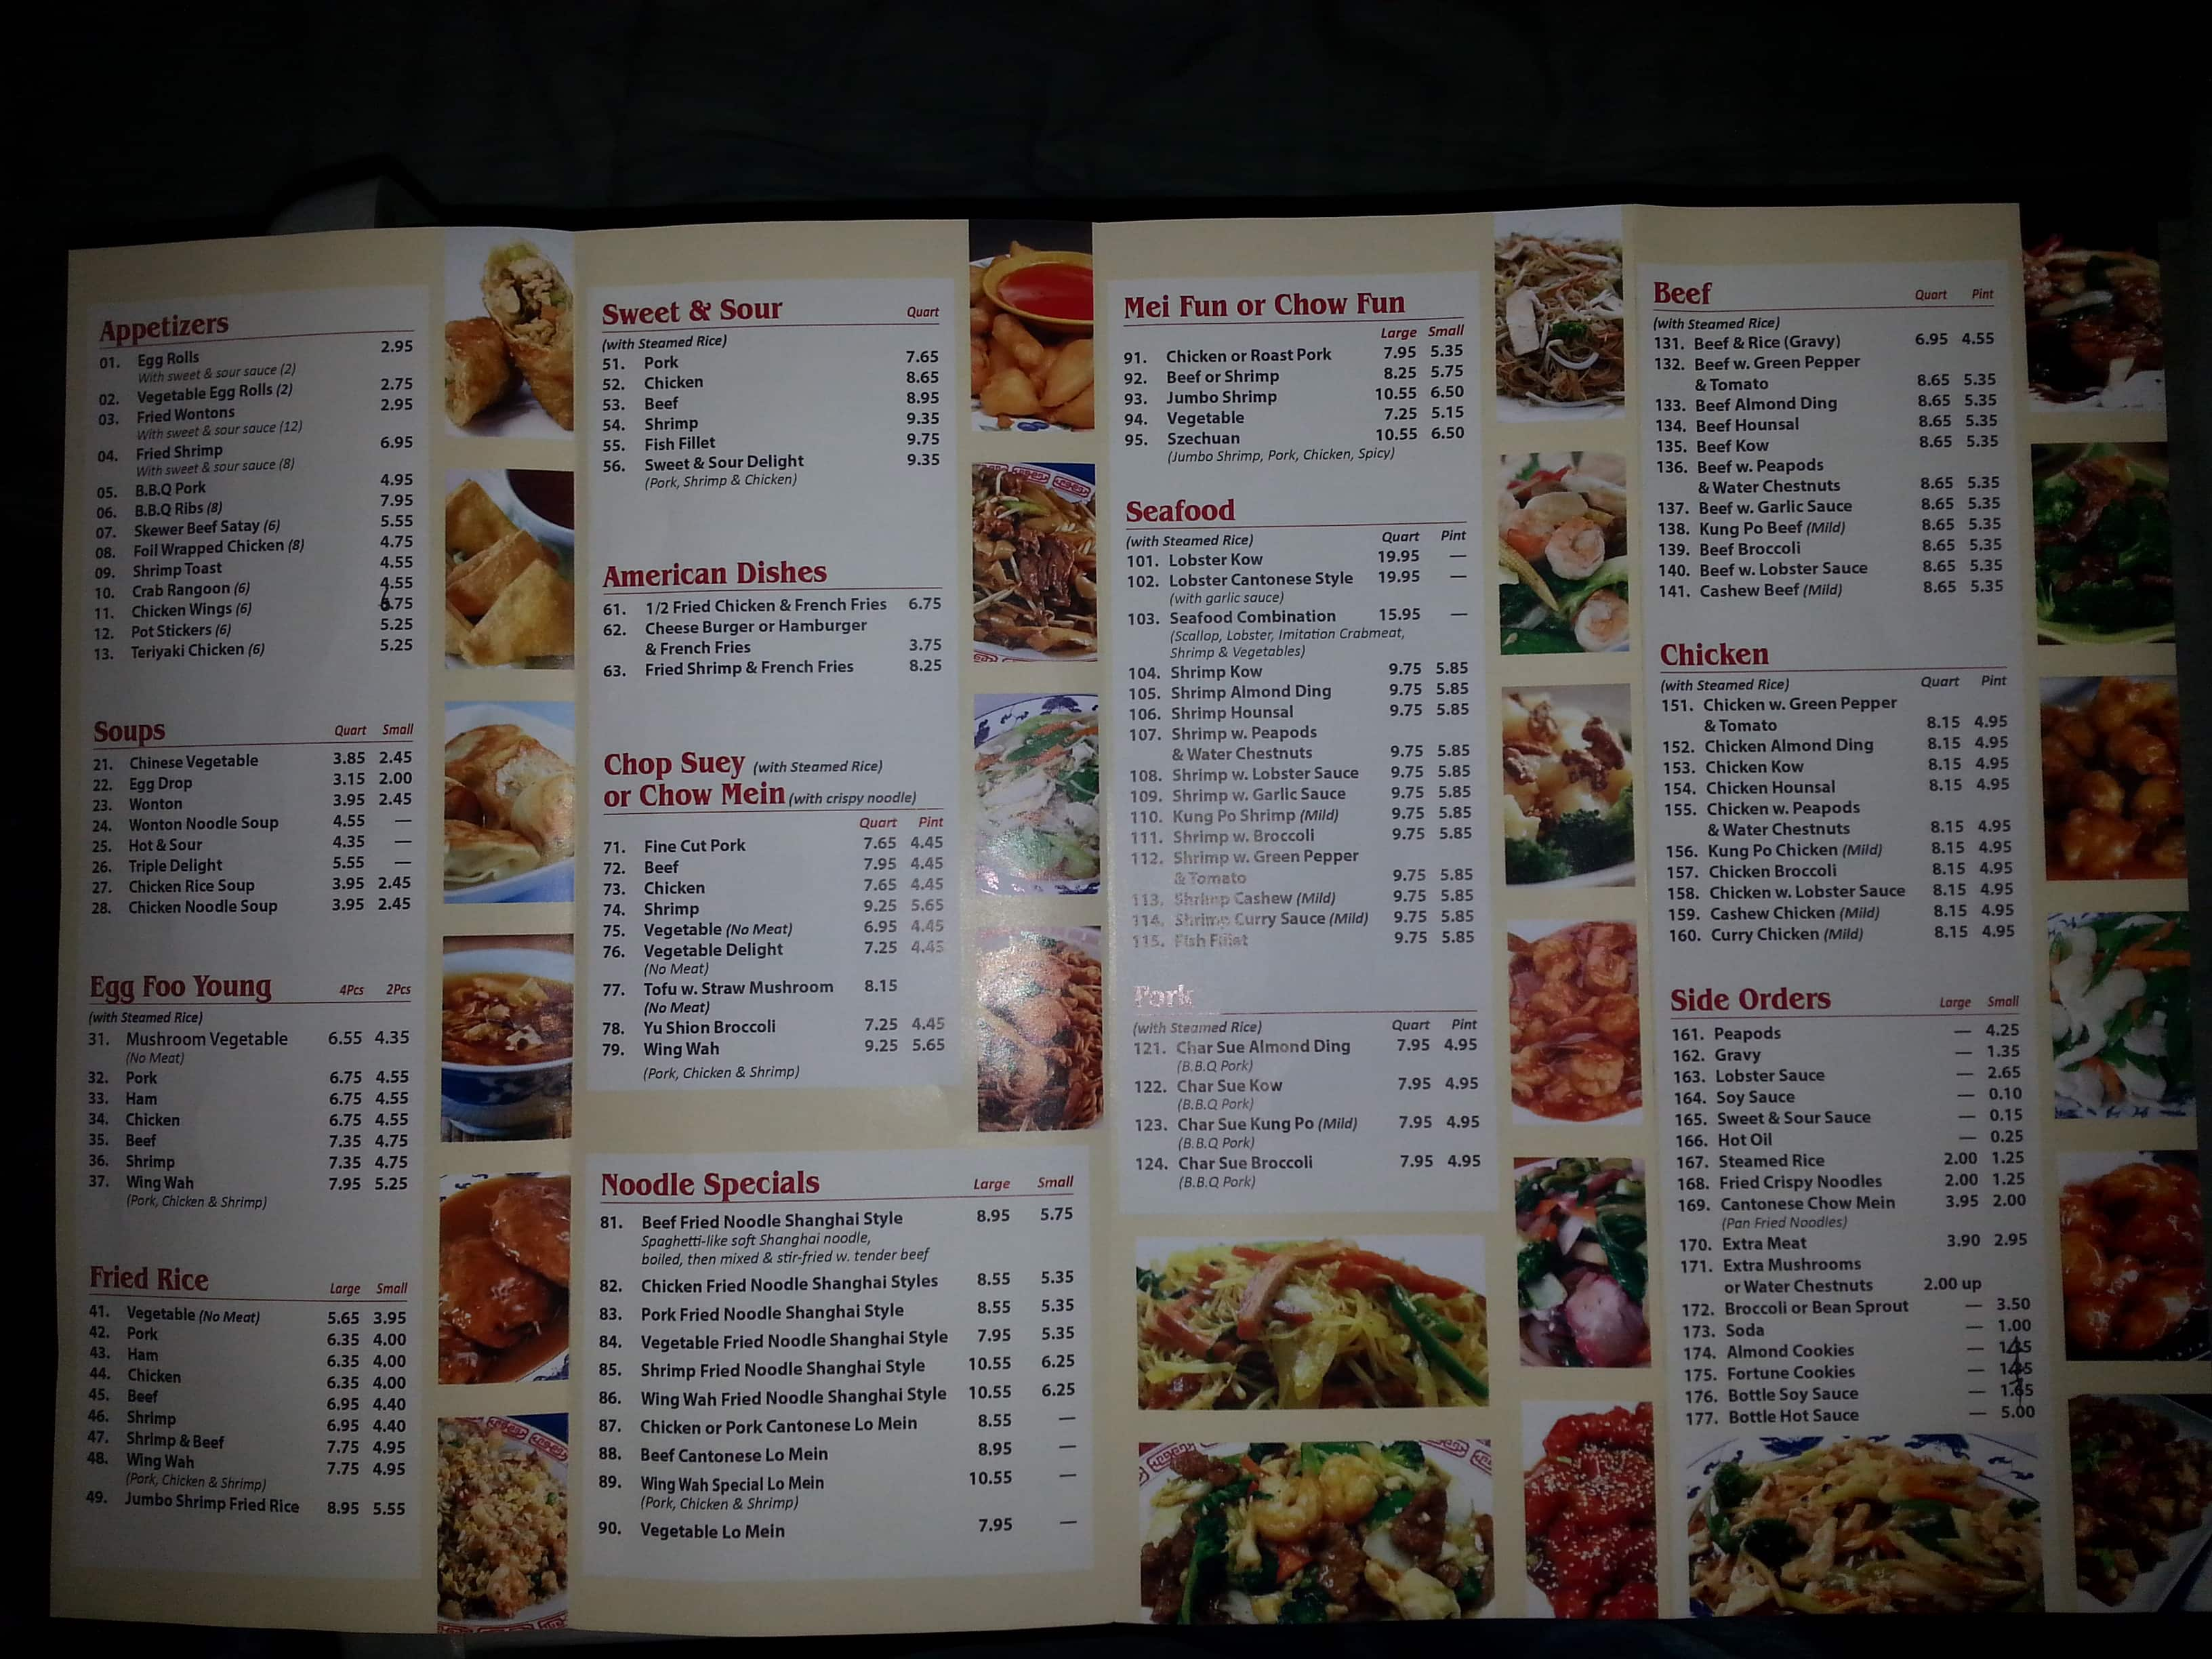 Wing Wah Restaurant Menu Menu For Wing Wah Restaurant Gary Gary